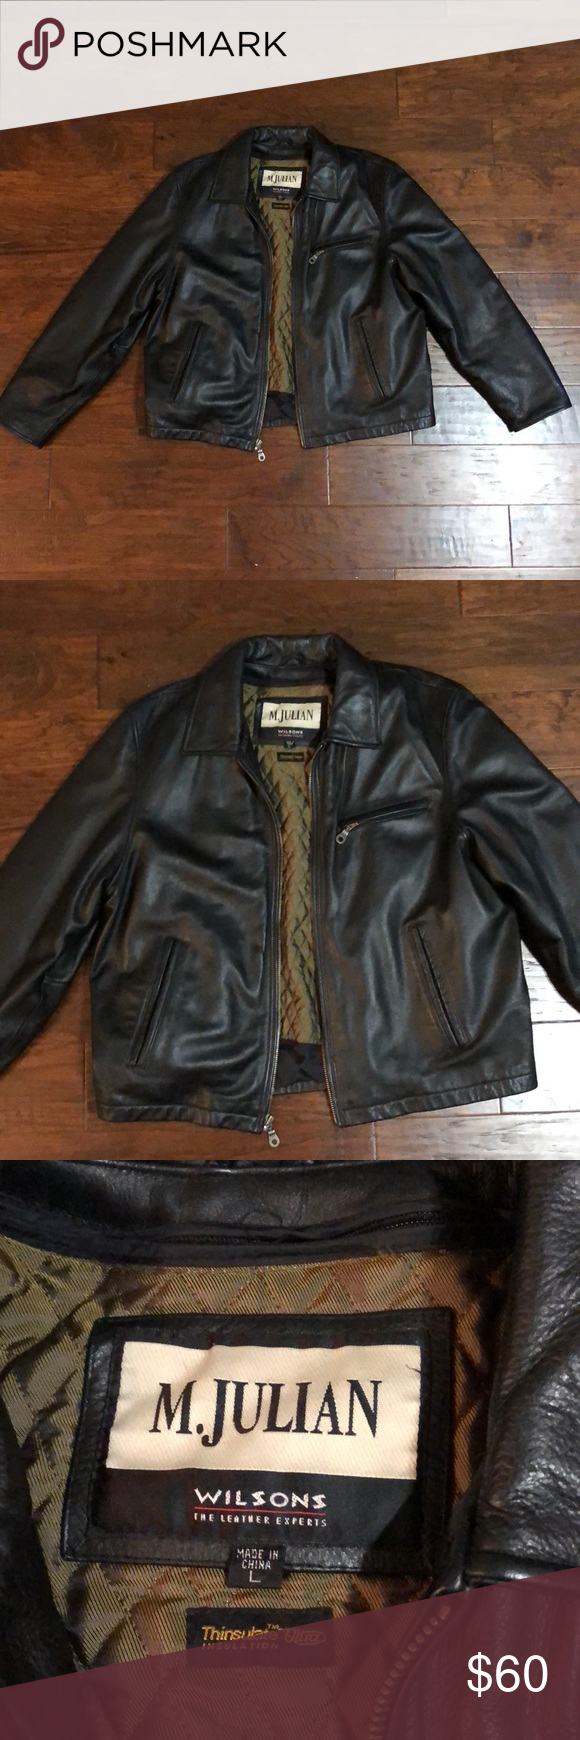 Wilson's Leather Jacket M. Julian size Large Leather